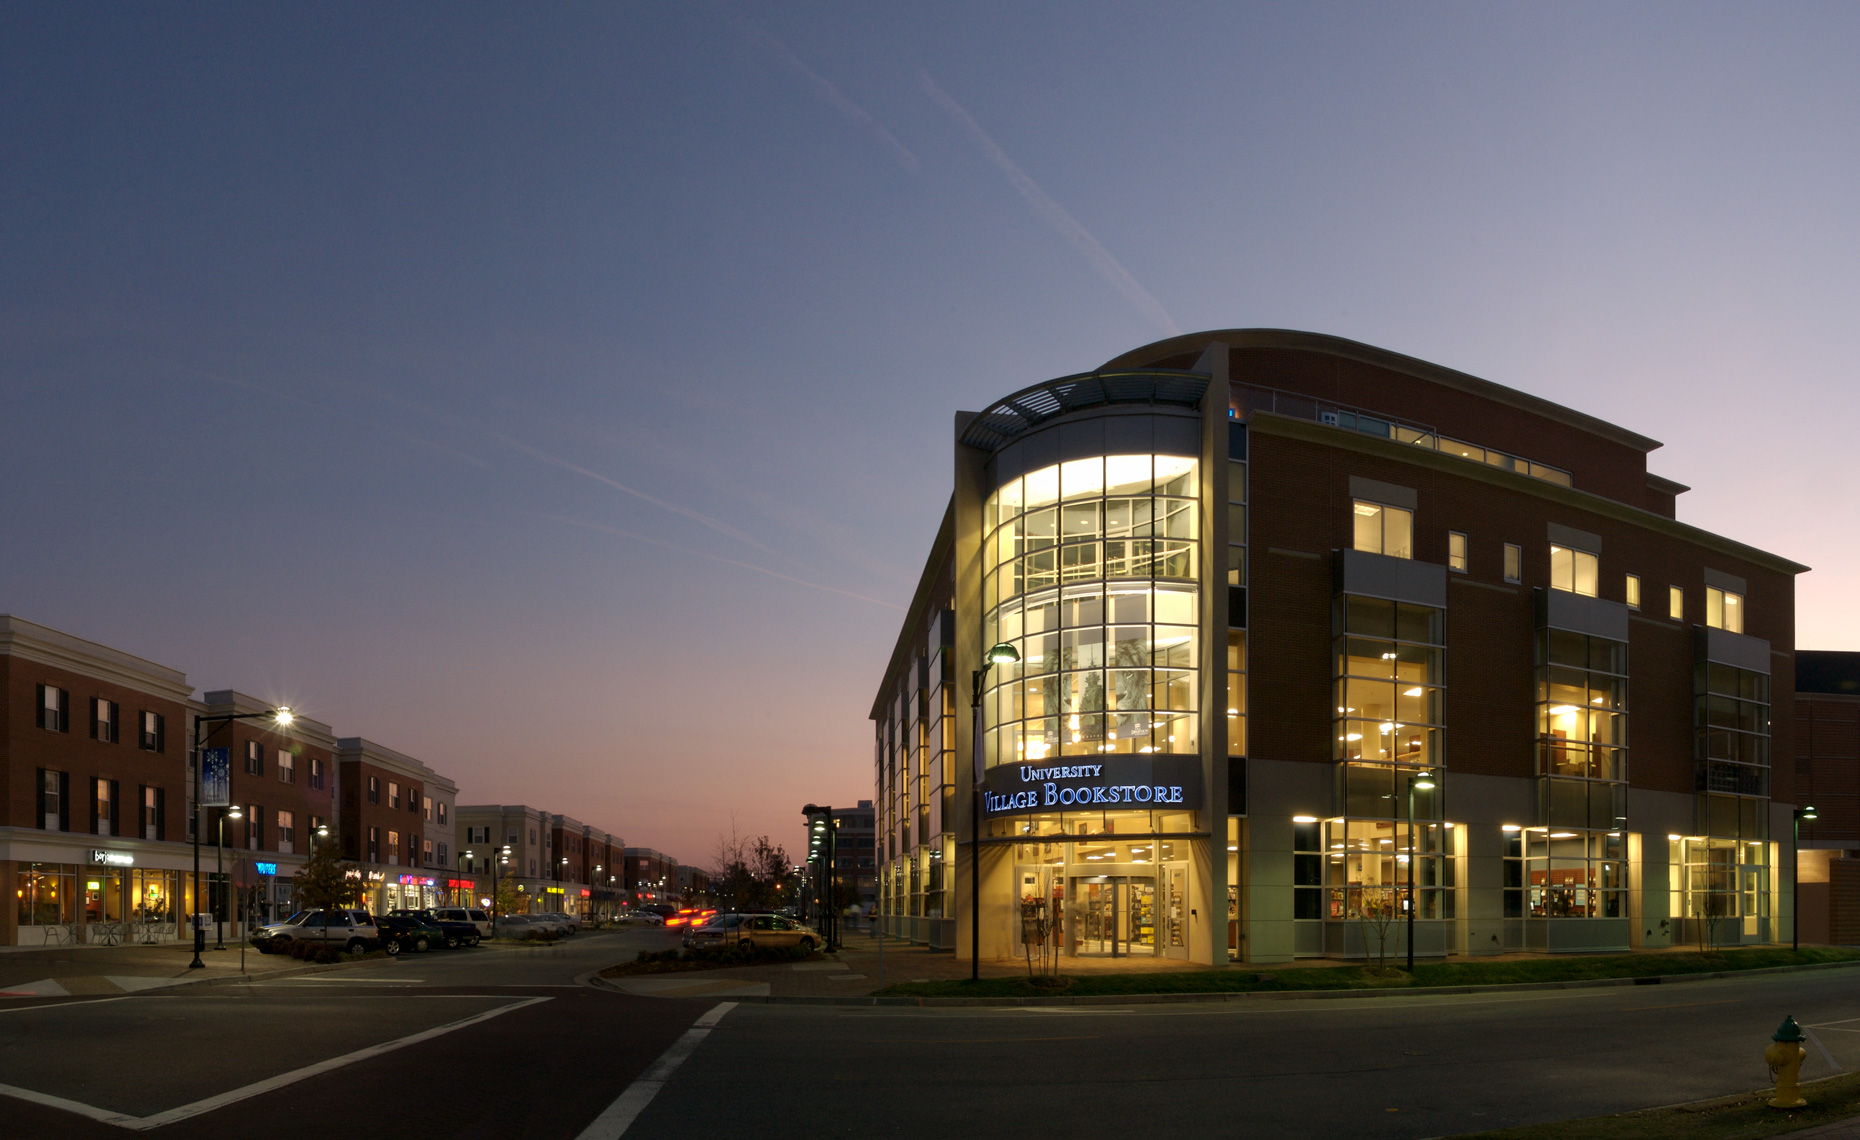 Old Dominion University Bookstore